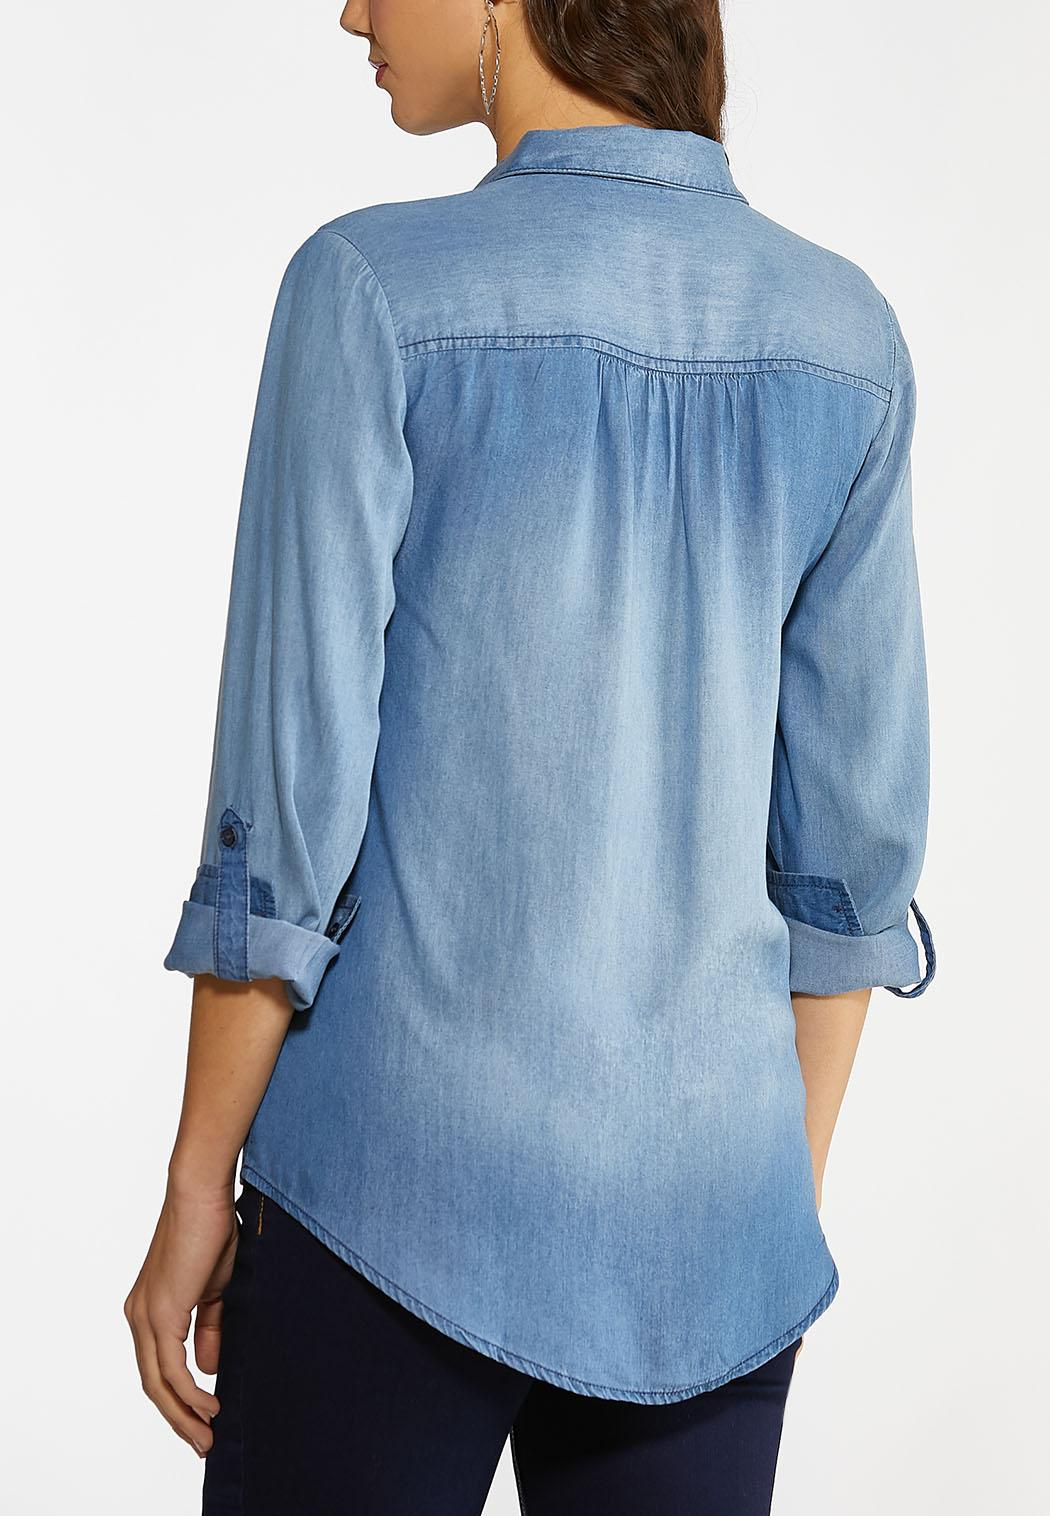 Lace Up Chambray Top (Item #44093988)